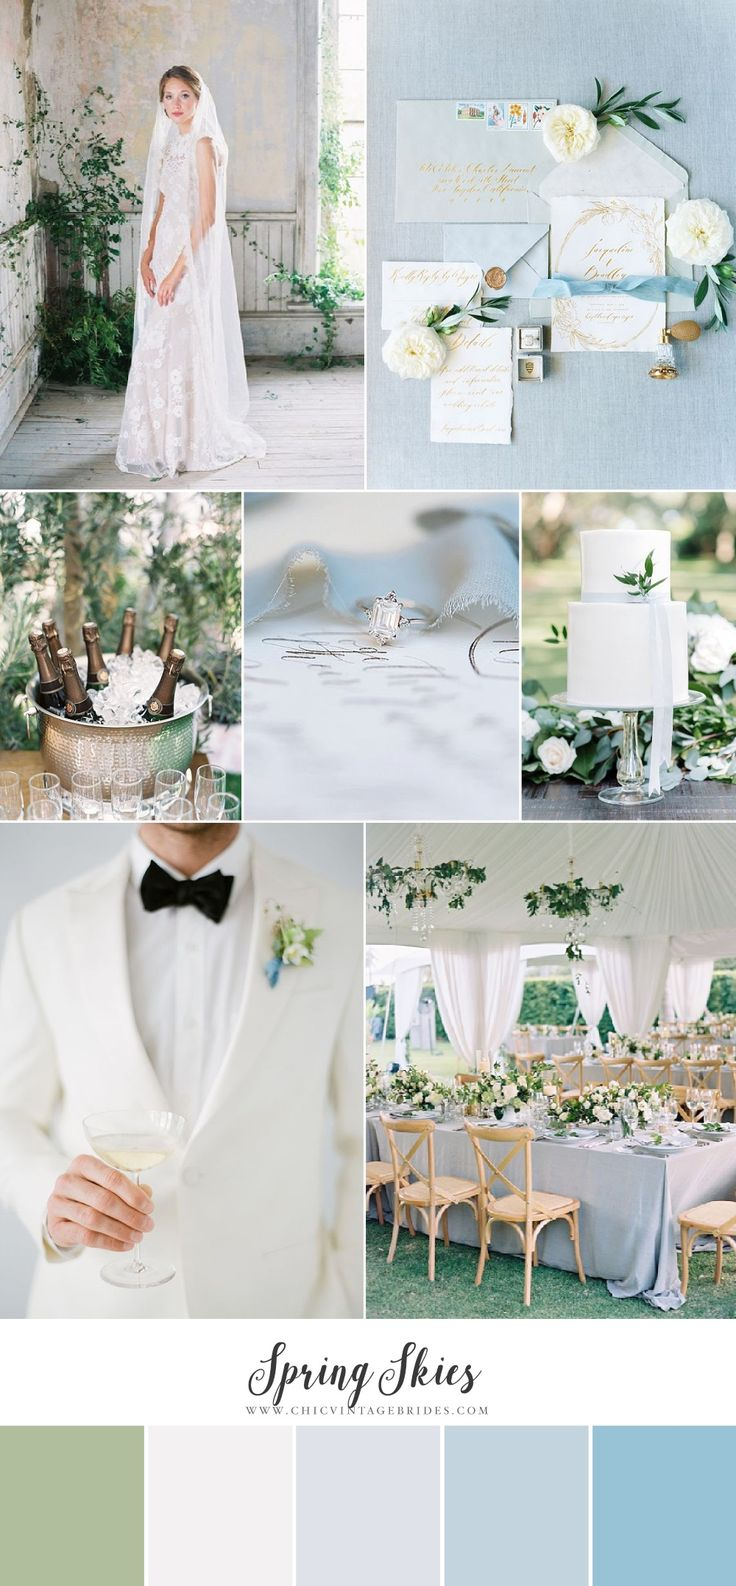 Spring Skies - Heavenly Wedding Inspiration in Soft Shades of Blue